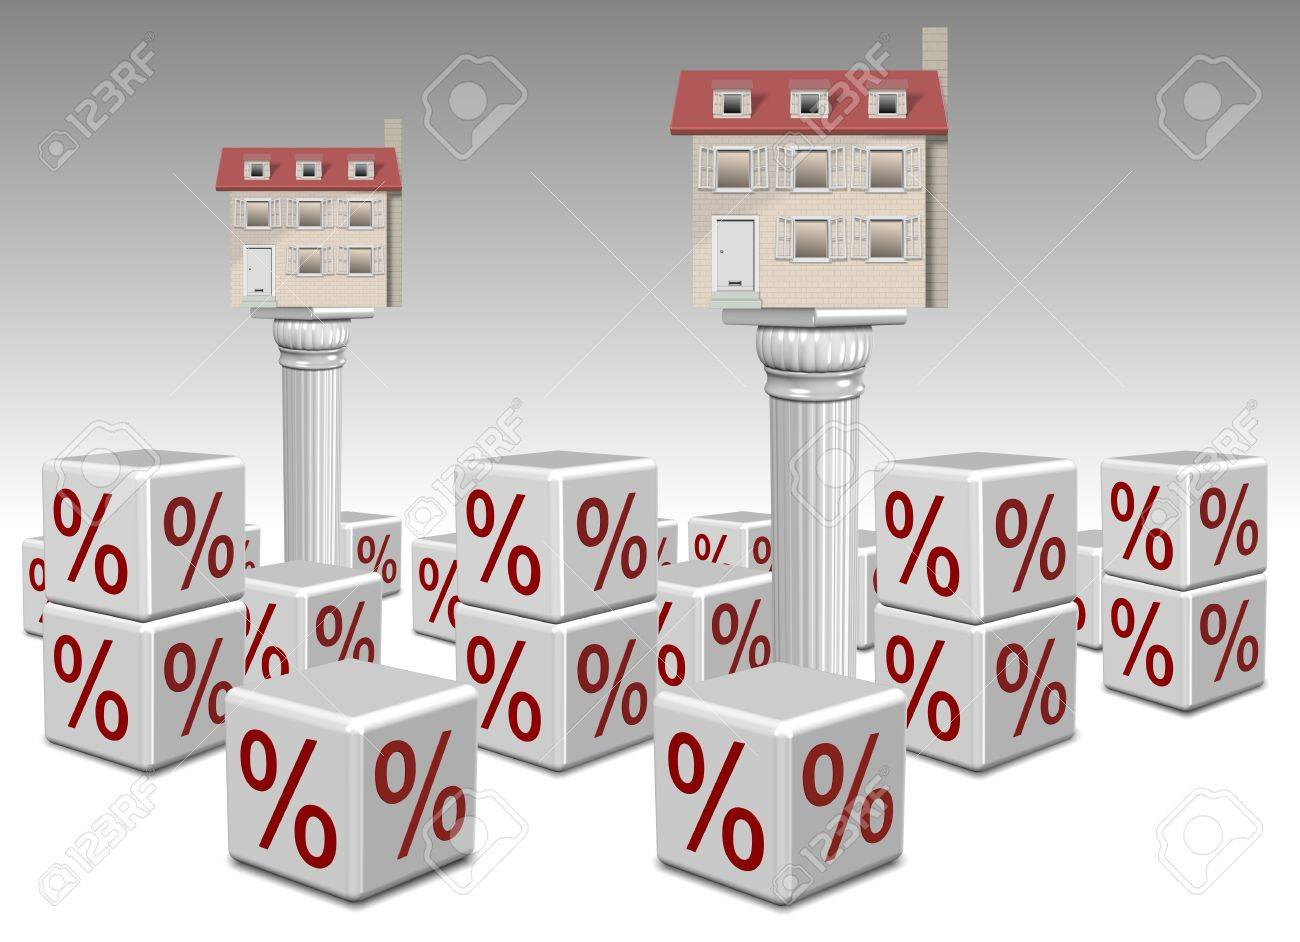 Houses on columns surrounded by percentage symbols Stock Photo - 19082544